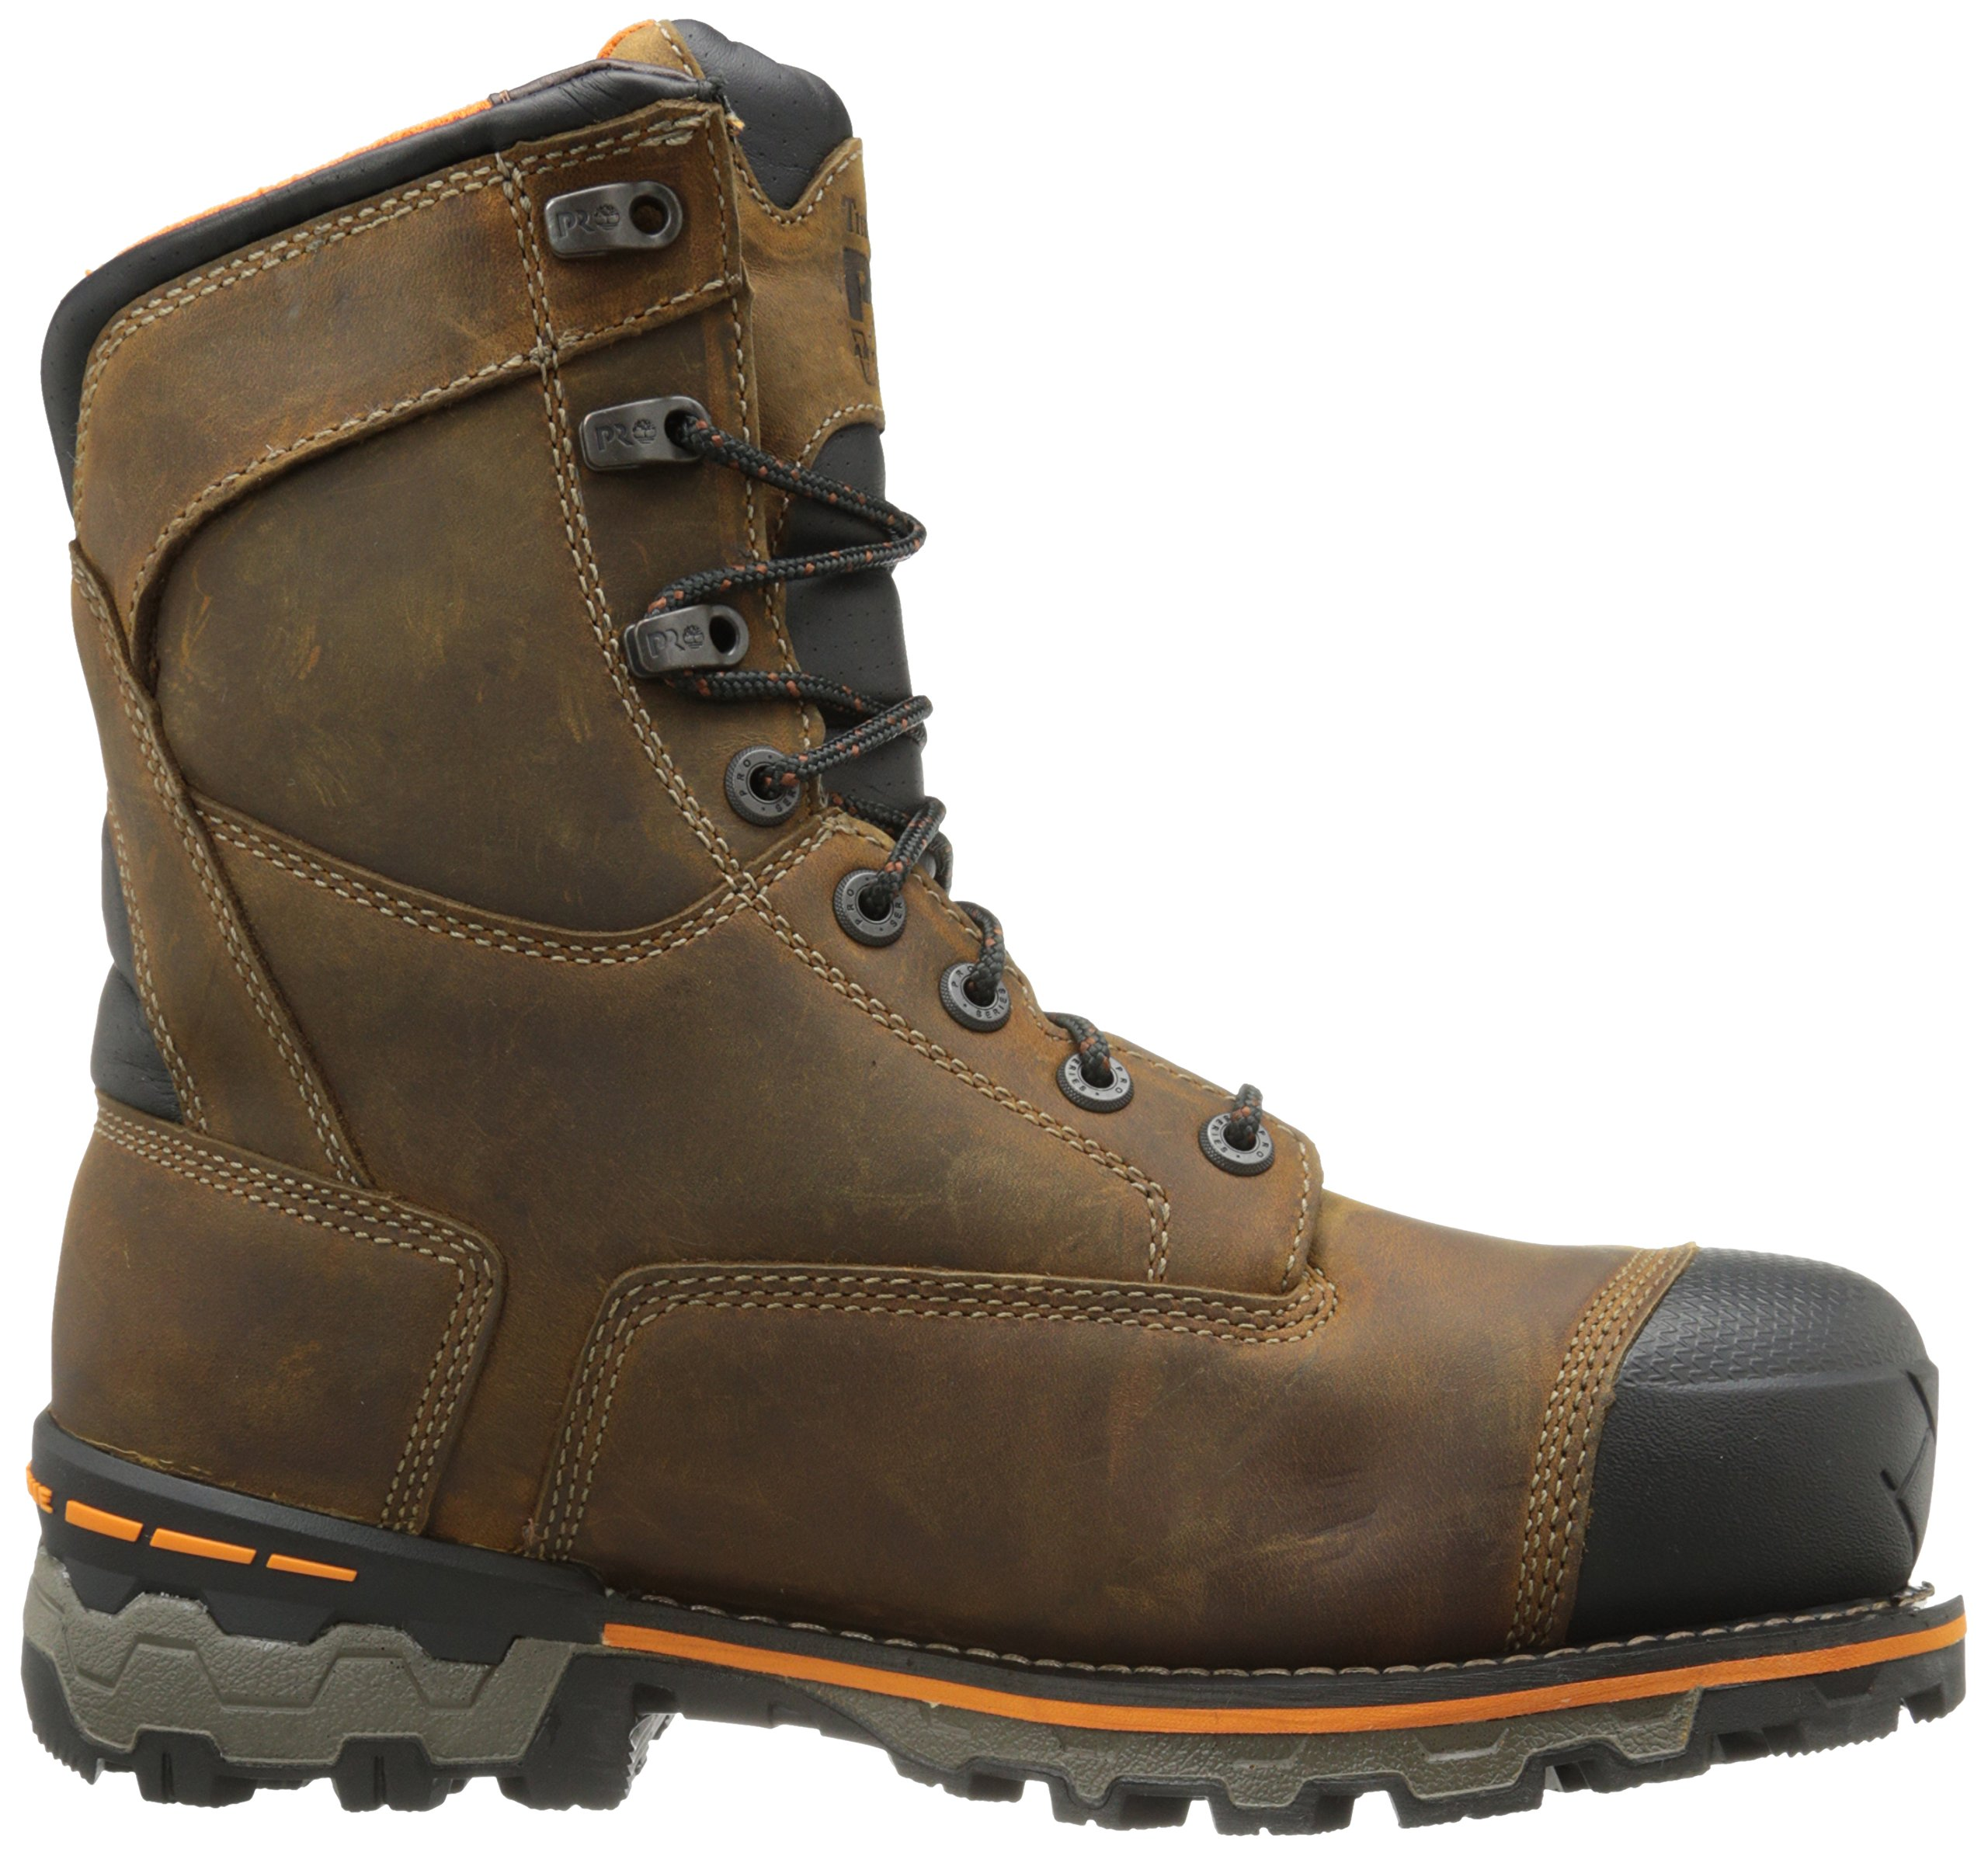 Timberland PRO Men's 8 Inch Boondock Composite Toe Waterproof Industrial Work Boot,Brown Oiled Distressed Leather,7.5 W US by Timberland PRO (Image #7)